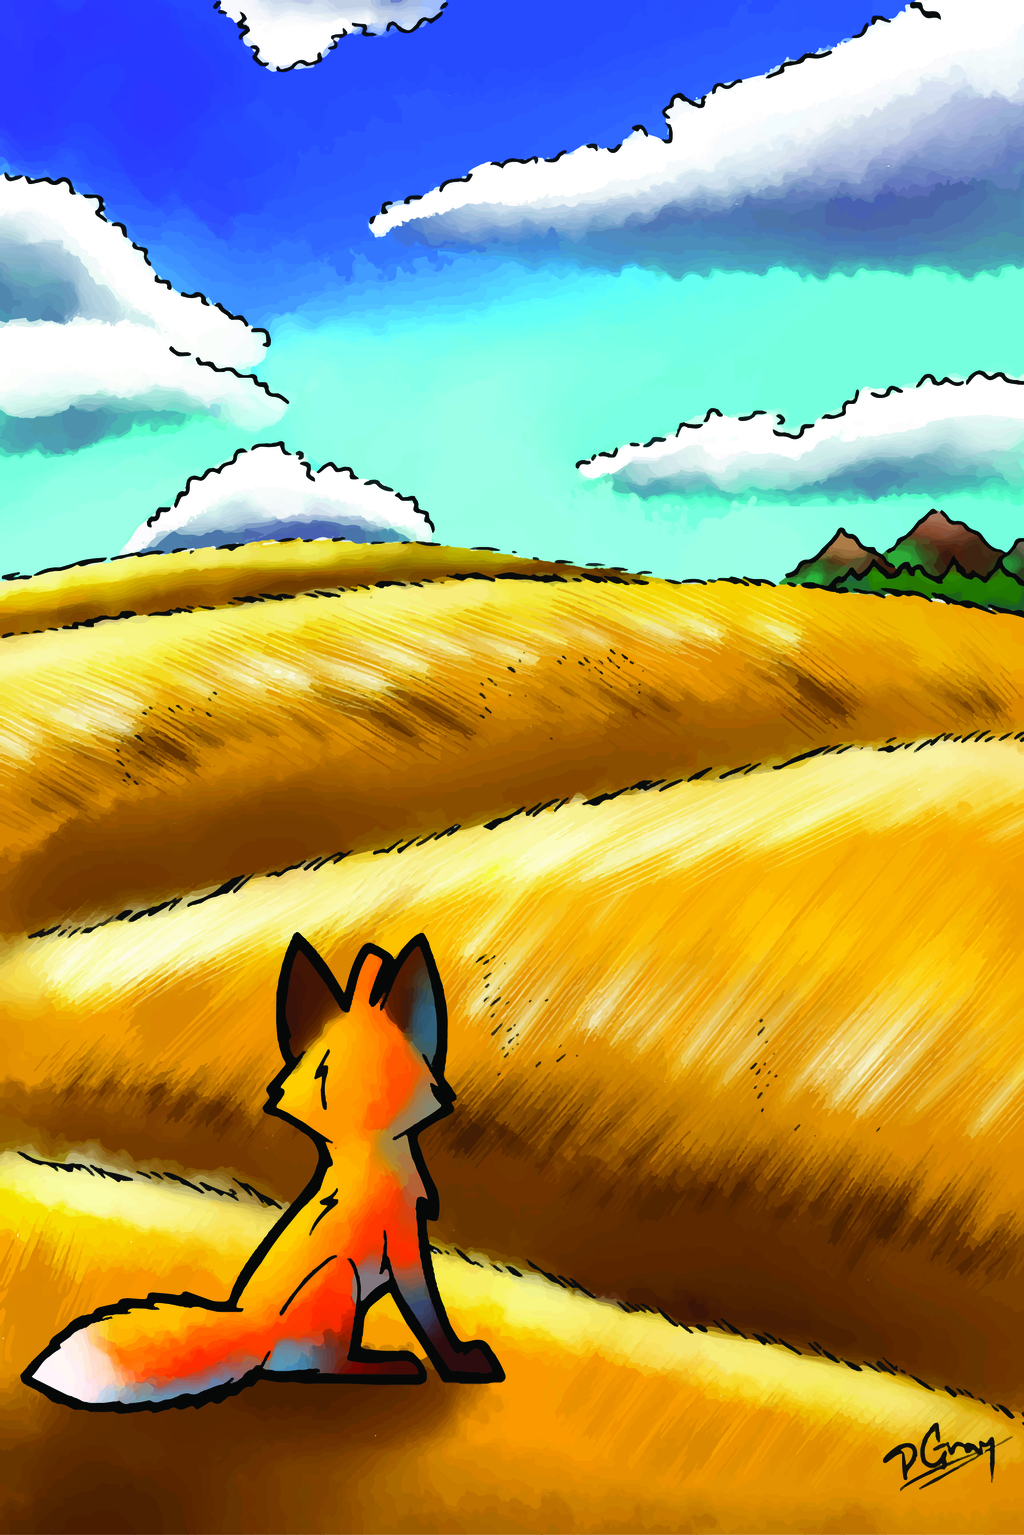 Fox and the hills